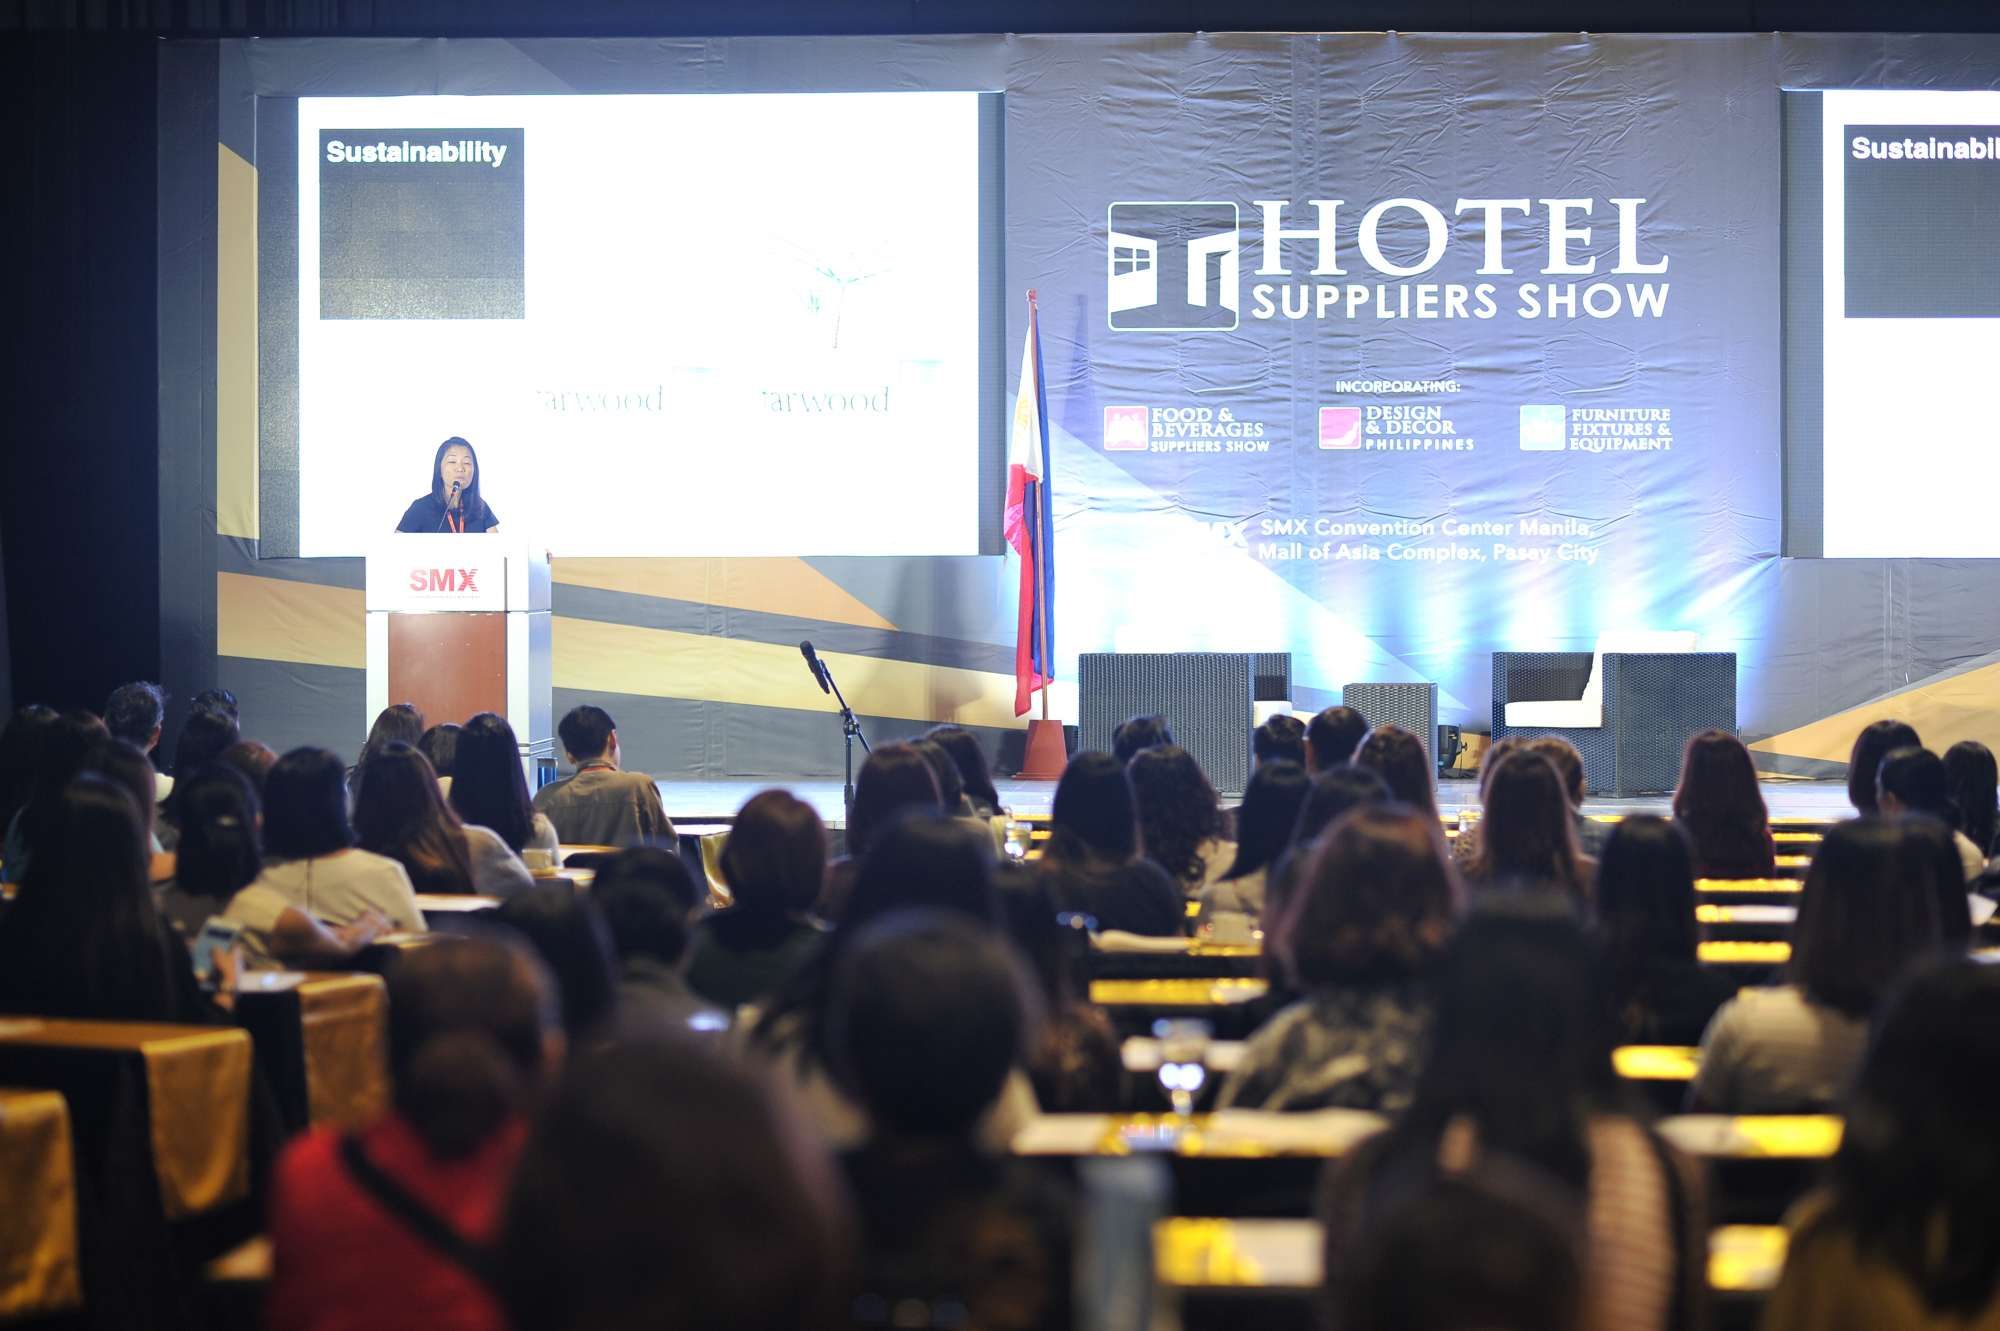 9th Hotel Suppliers Show brings 360˚ industry showcase